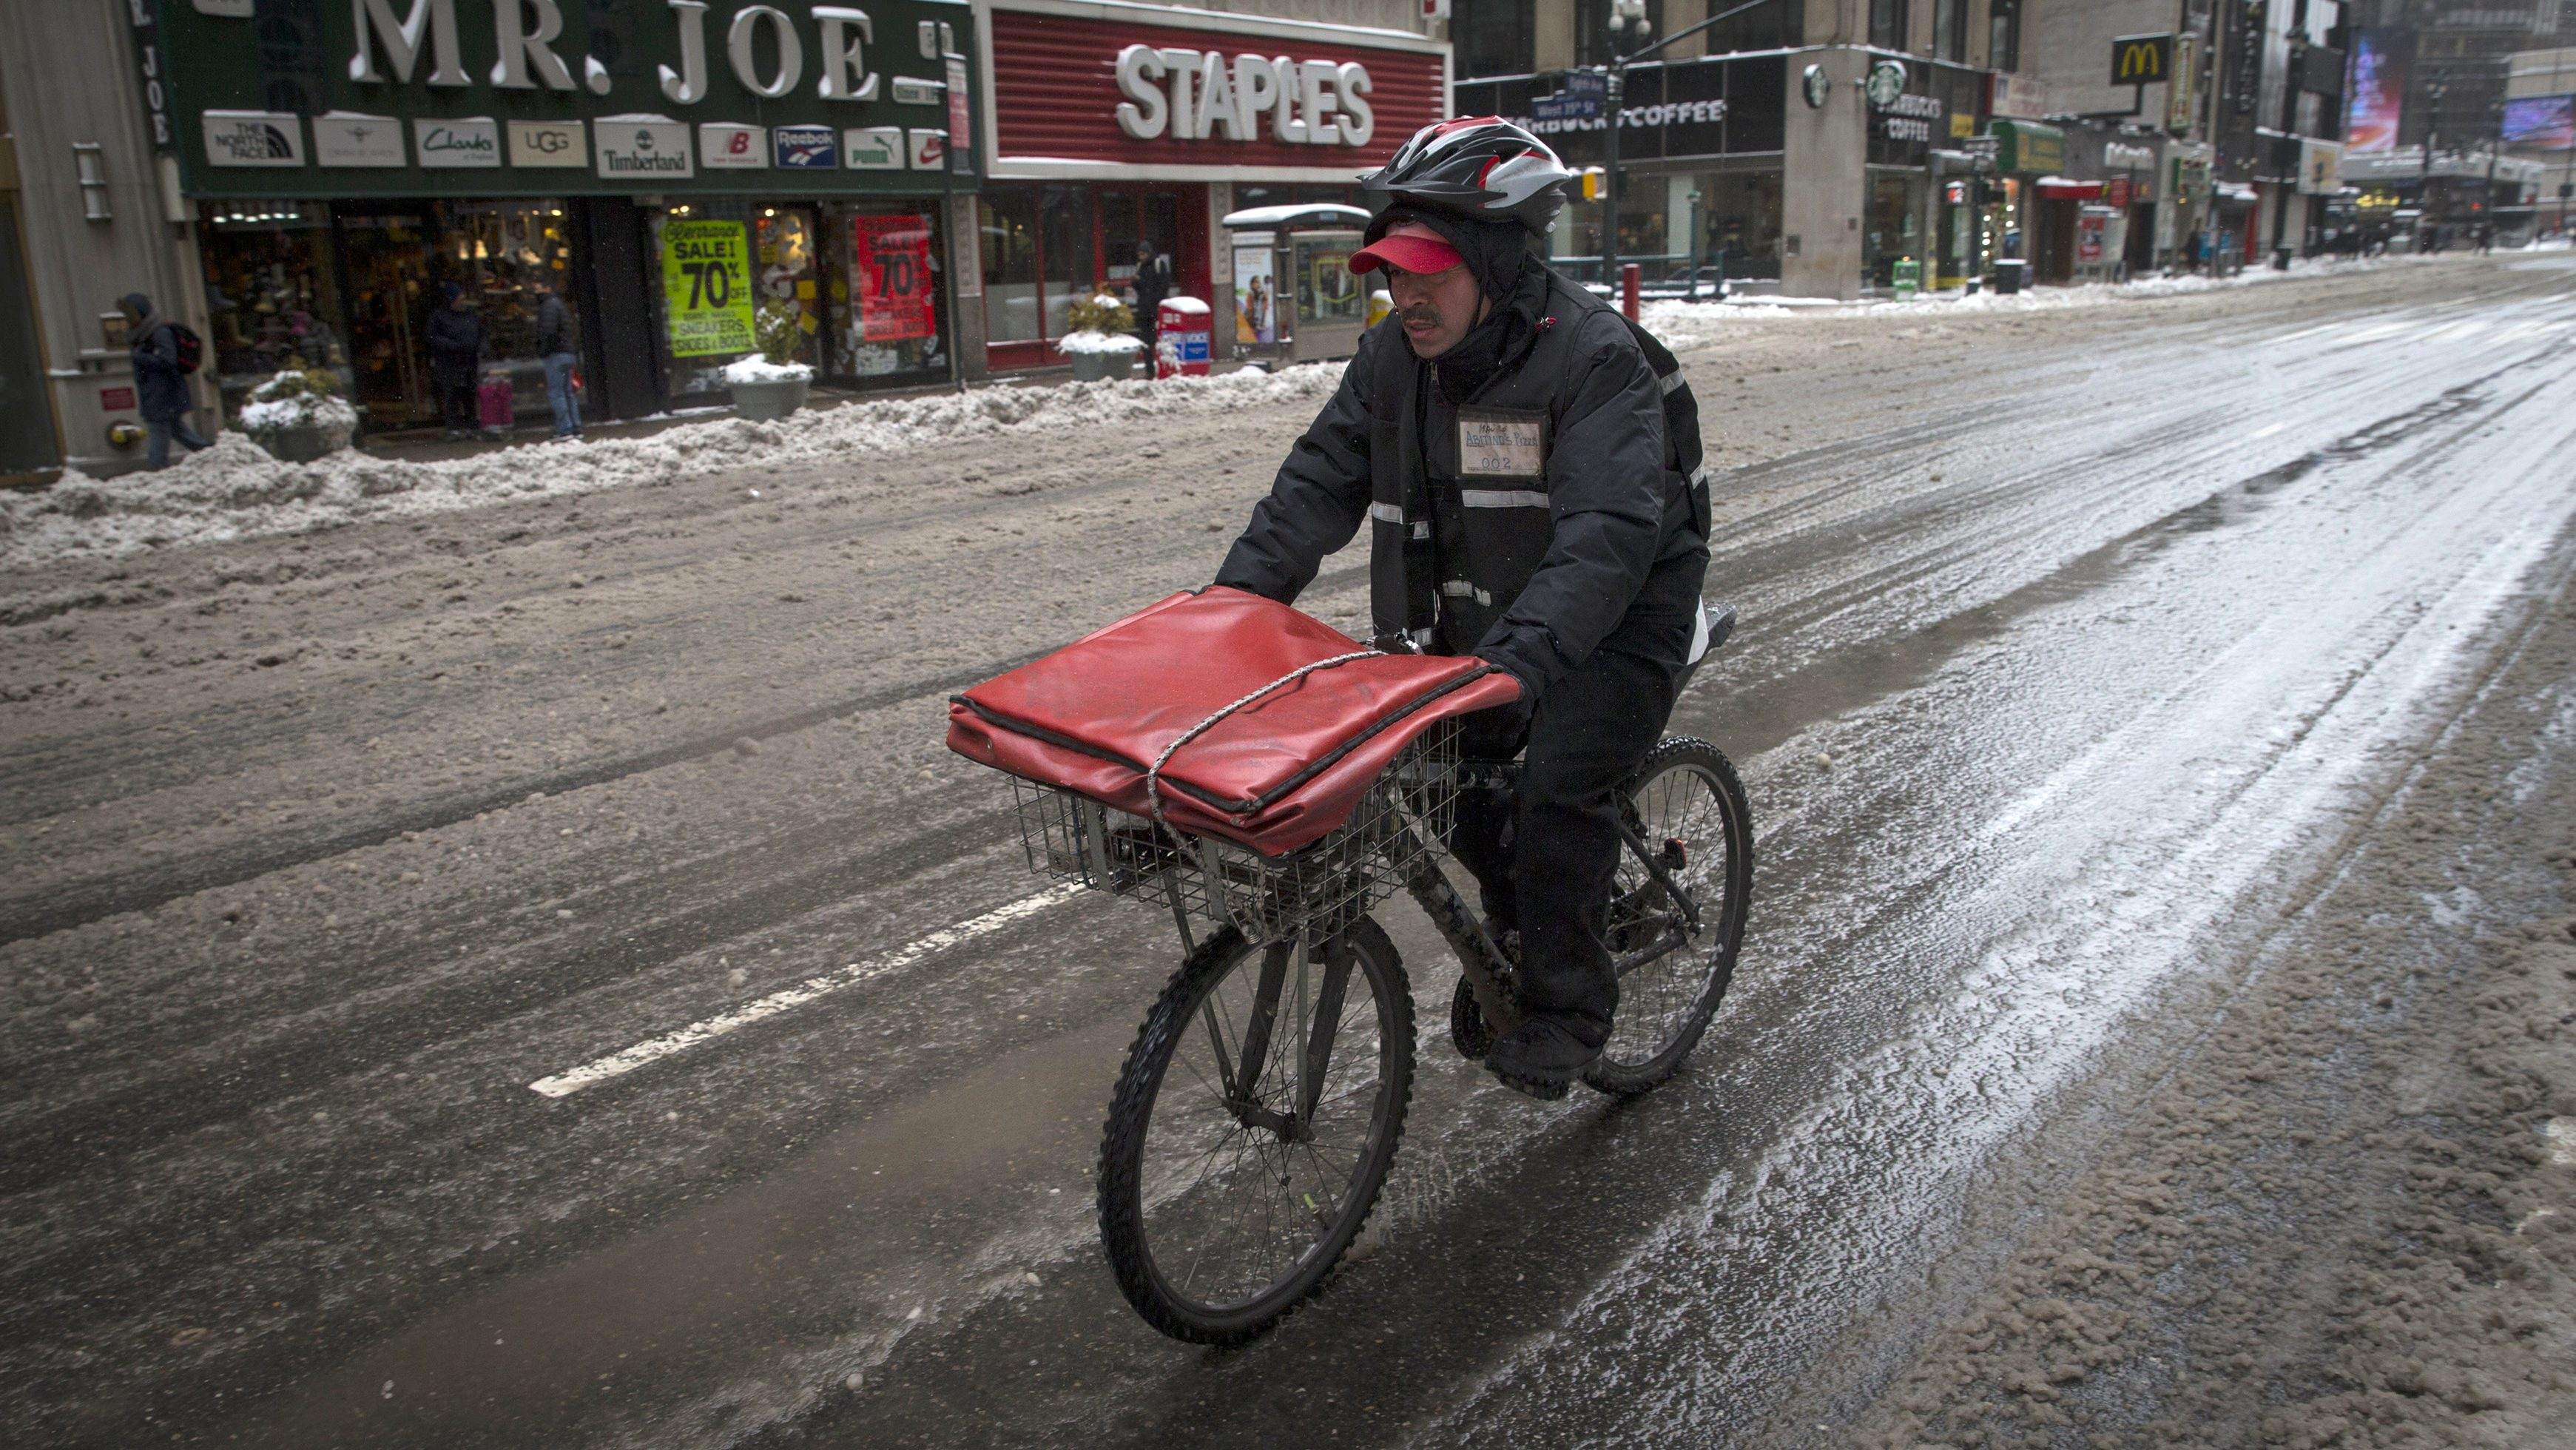 """A pizza delivery man rides on a bicycle on 8th avenue in New York city as the city slowly returned to normal after being hit by winter storm Juno January 27, 2015. A """"life-threatening"""" blizzard barreled into the U.S. Northeast, affecting up to 20 percent of Americans as it kept workers and students housebound, halted thousands of flights and prompted officials to ban cars from roads and shut down public transport.  REUTERS/Mike Segar  (UNITED STATES - Tags: ENVIRONMENT TRANSPORT) - RTR4N6YC"""